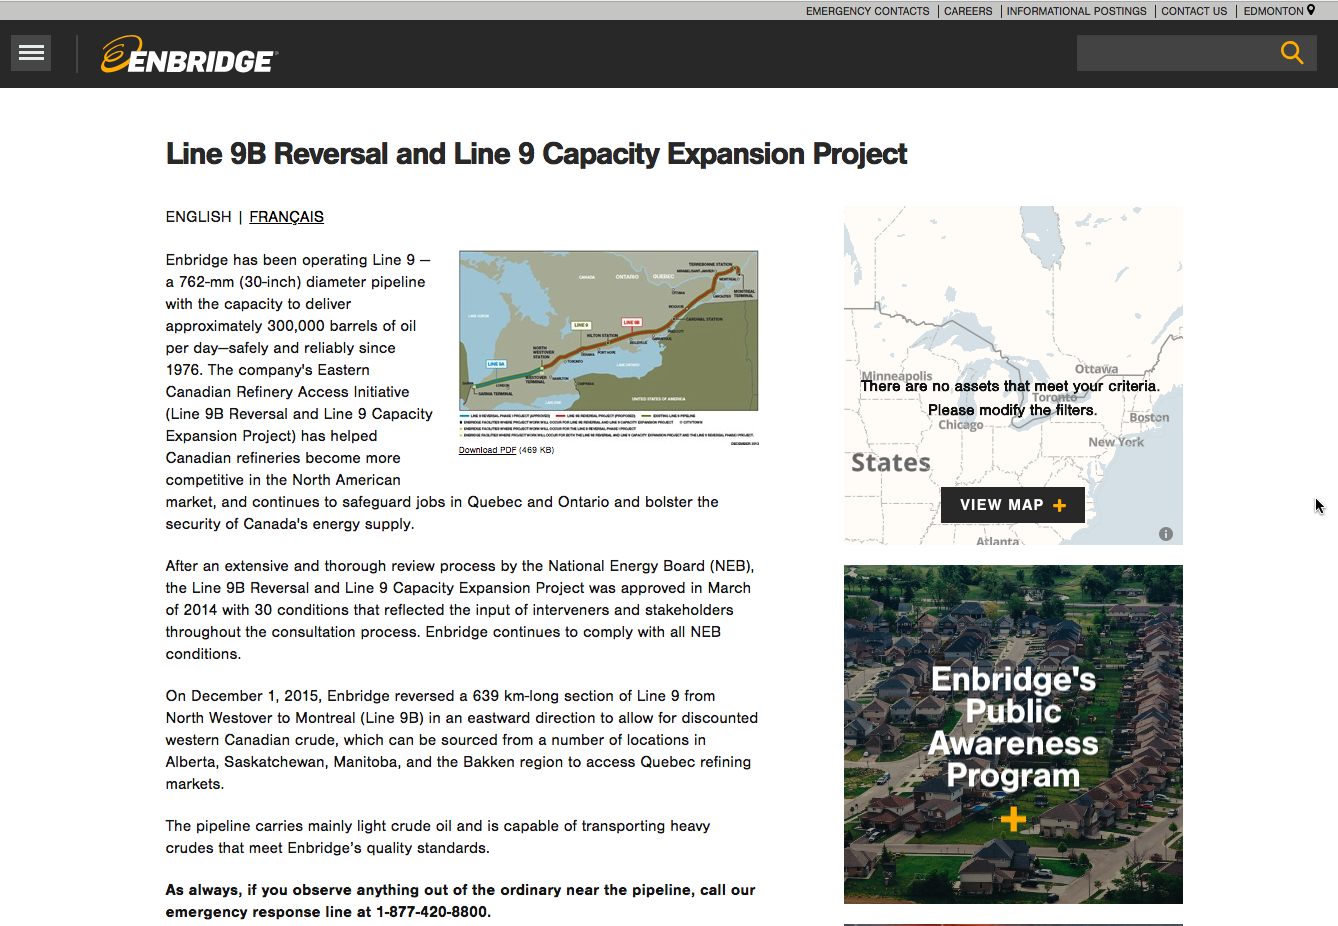 The Problem with Enbridge Line 5 pipelines through the Great Lakes